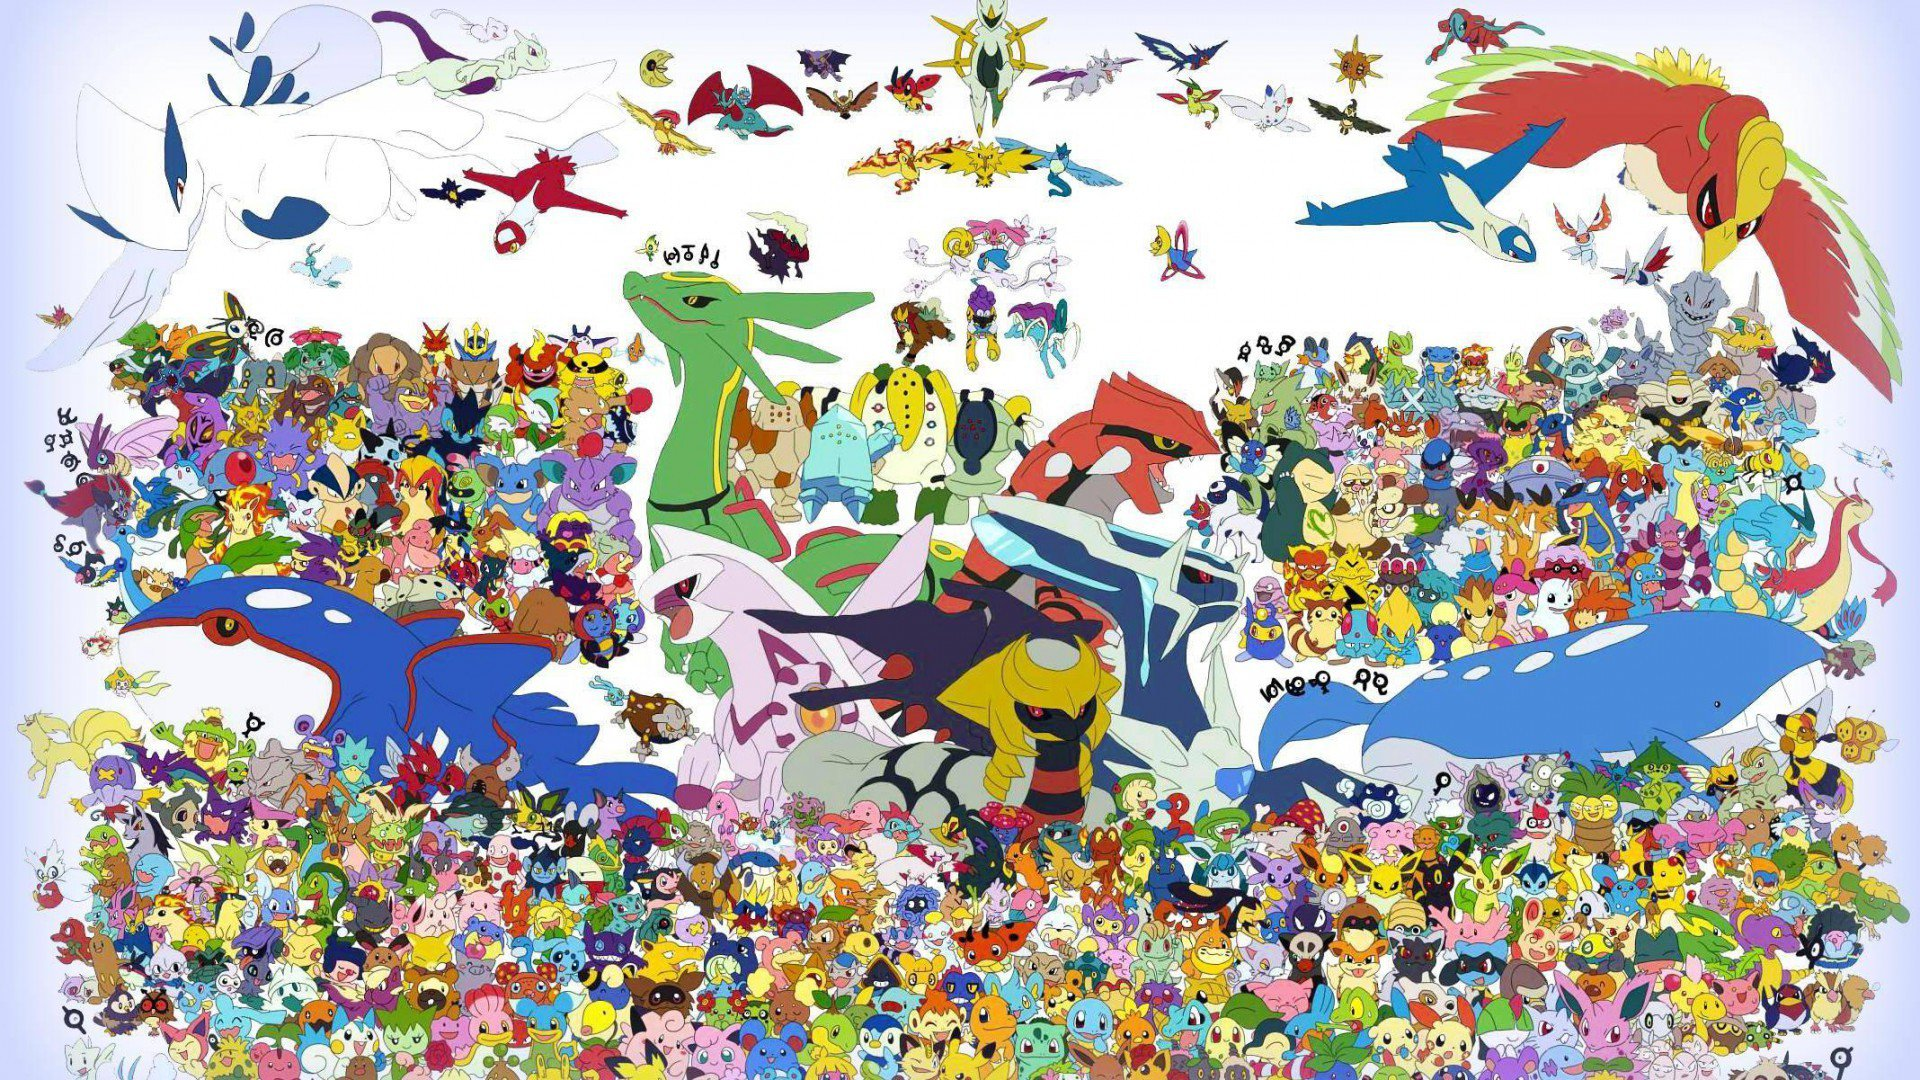 1080P Pokemon Wallpapers - WallpaperSafari Pokemon Wallpaper Hd 1920x1080